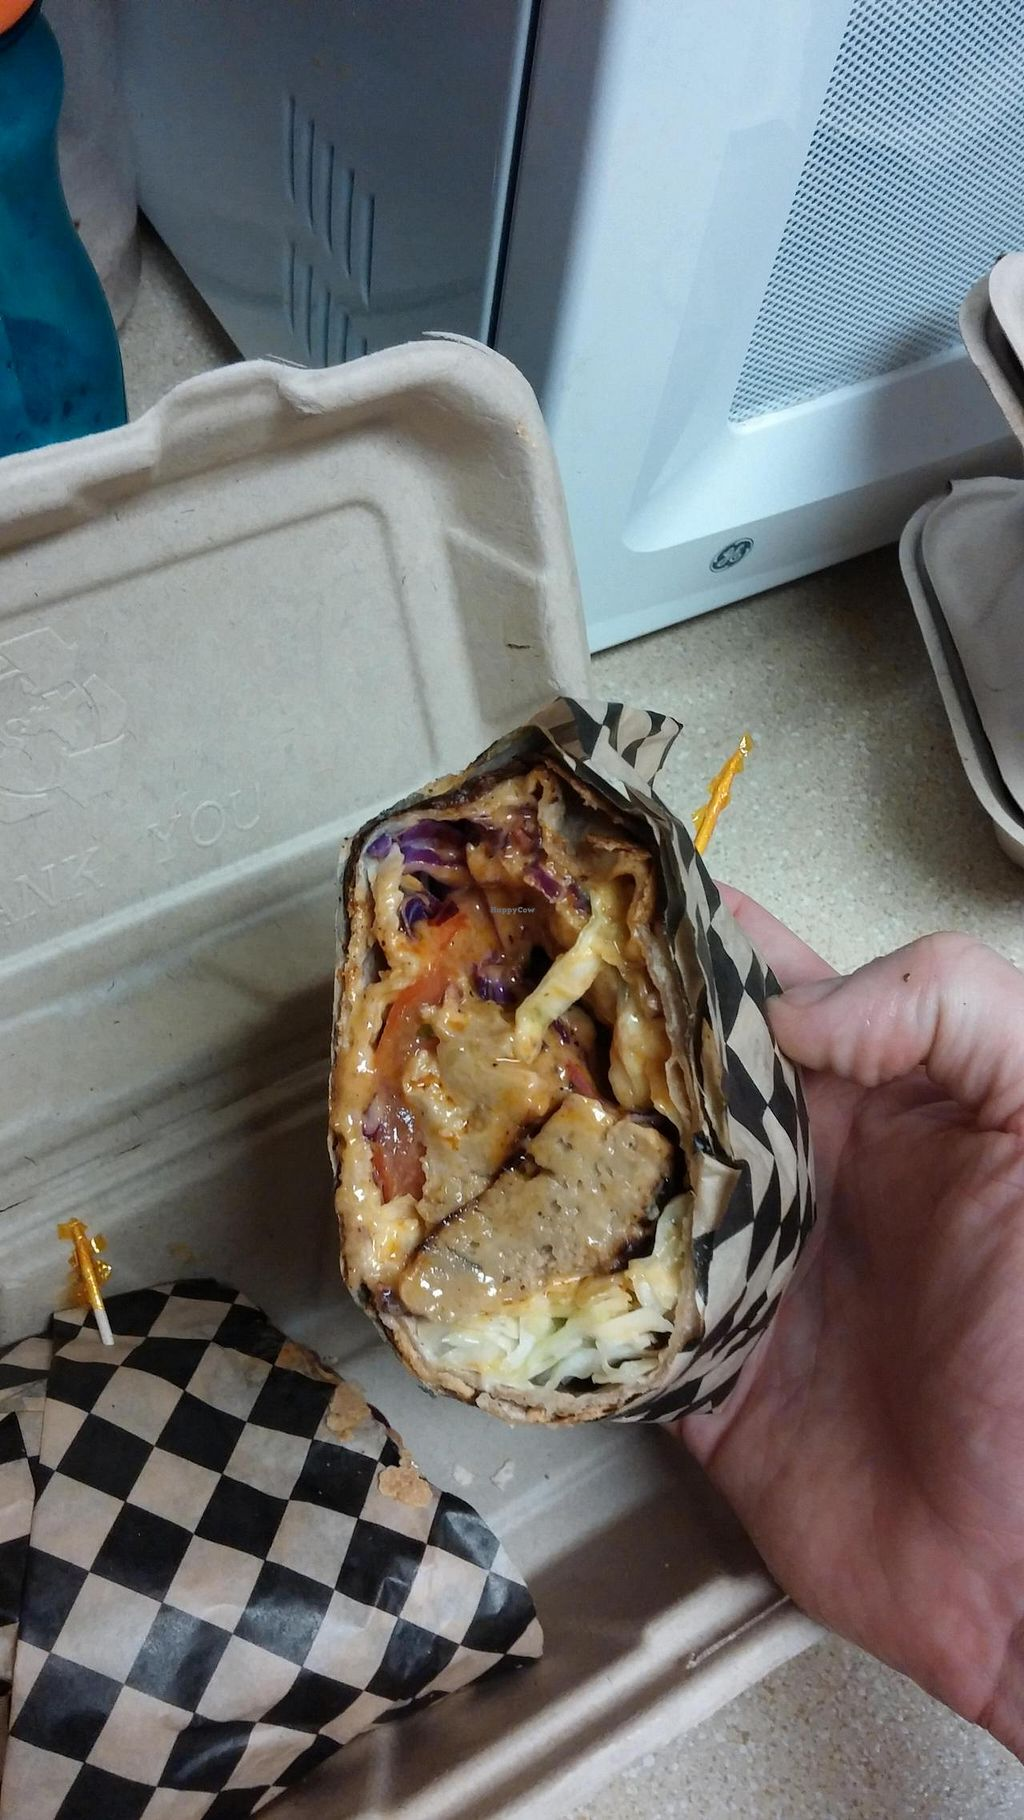 """Photo of CLOSED: No Bones About It - Food Truck  by <a href=""""/members/profile/happytheclown37"""">happytheclown37</a> <br/> Coconut Buffalo Seitan Wrap <br/> November 16, 2014  - <a href='/contact/abuse/image/52569/85885'>Report</a>"""